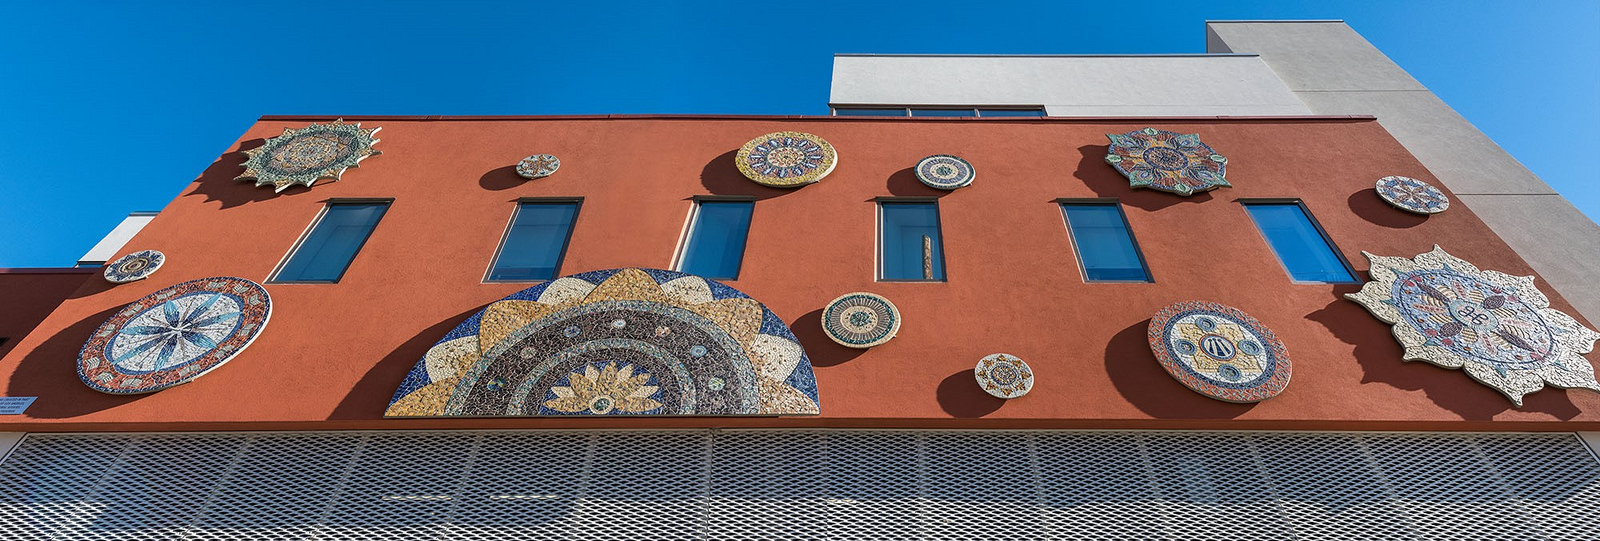 Exterior of Legal Aid Foundation of Los Angeles' new headquarters on 8th Street and Union. Piece by Piece installed a series of 13 mandalas.